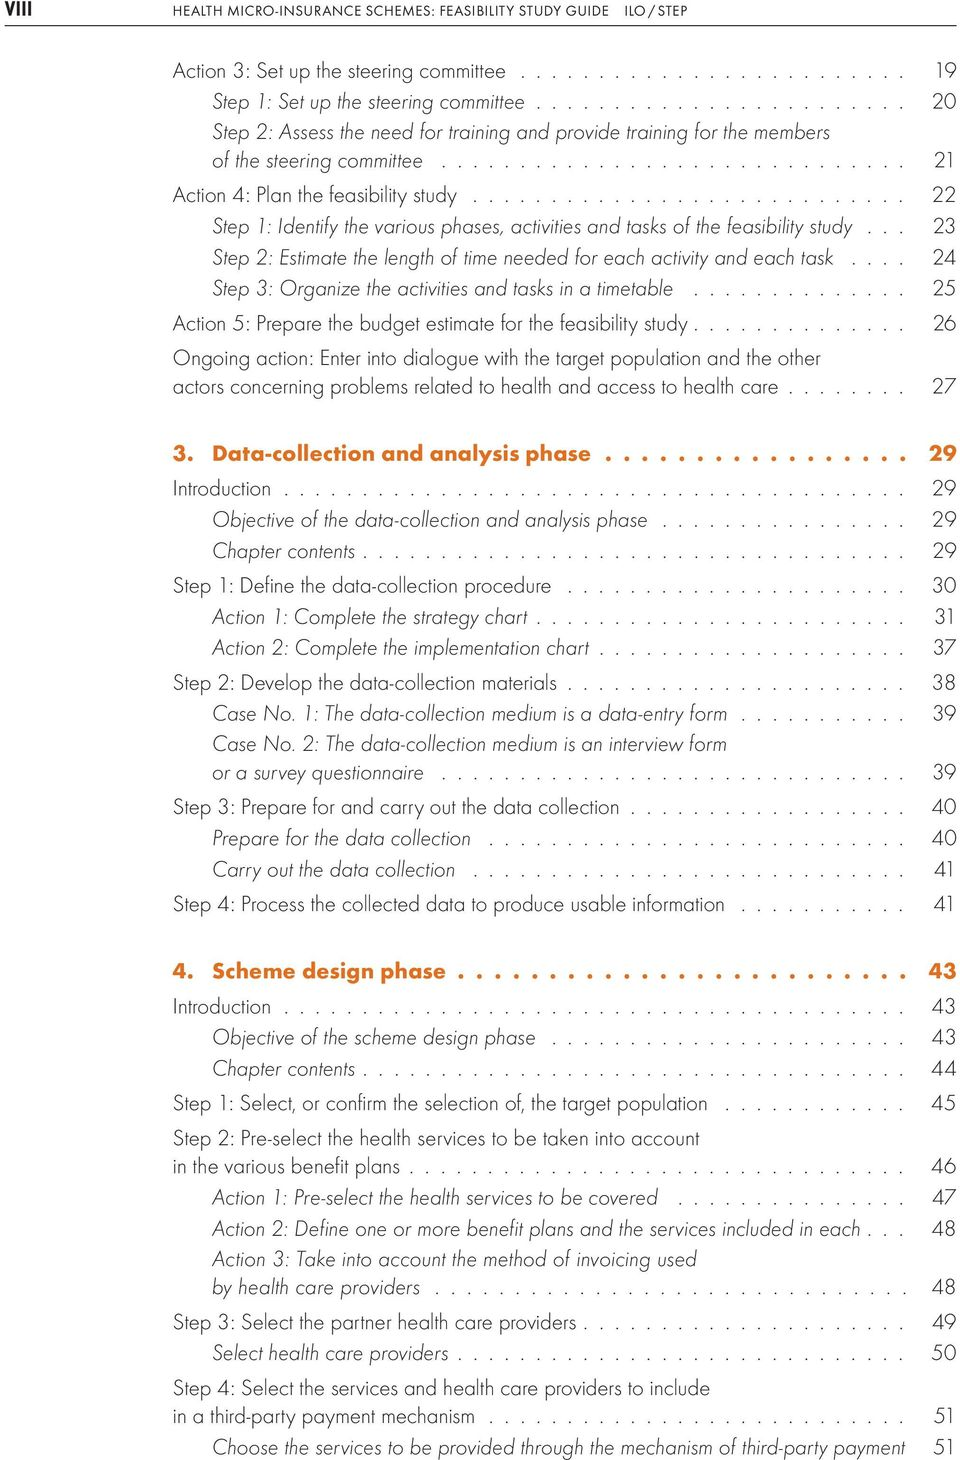 ........................... 22 Step 1: Identify the various phases, activities and tasks of the feasibility study... 23 Step 2: Estimate the length of time needed for each activity and each task.